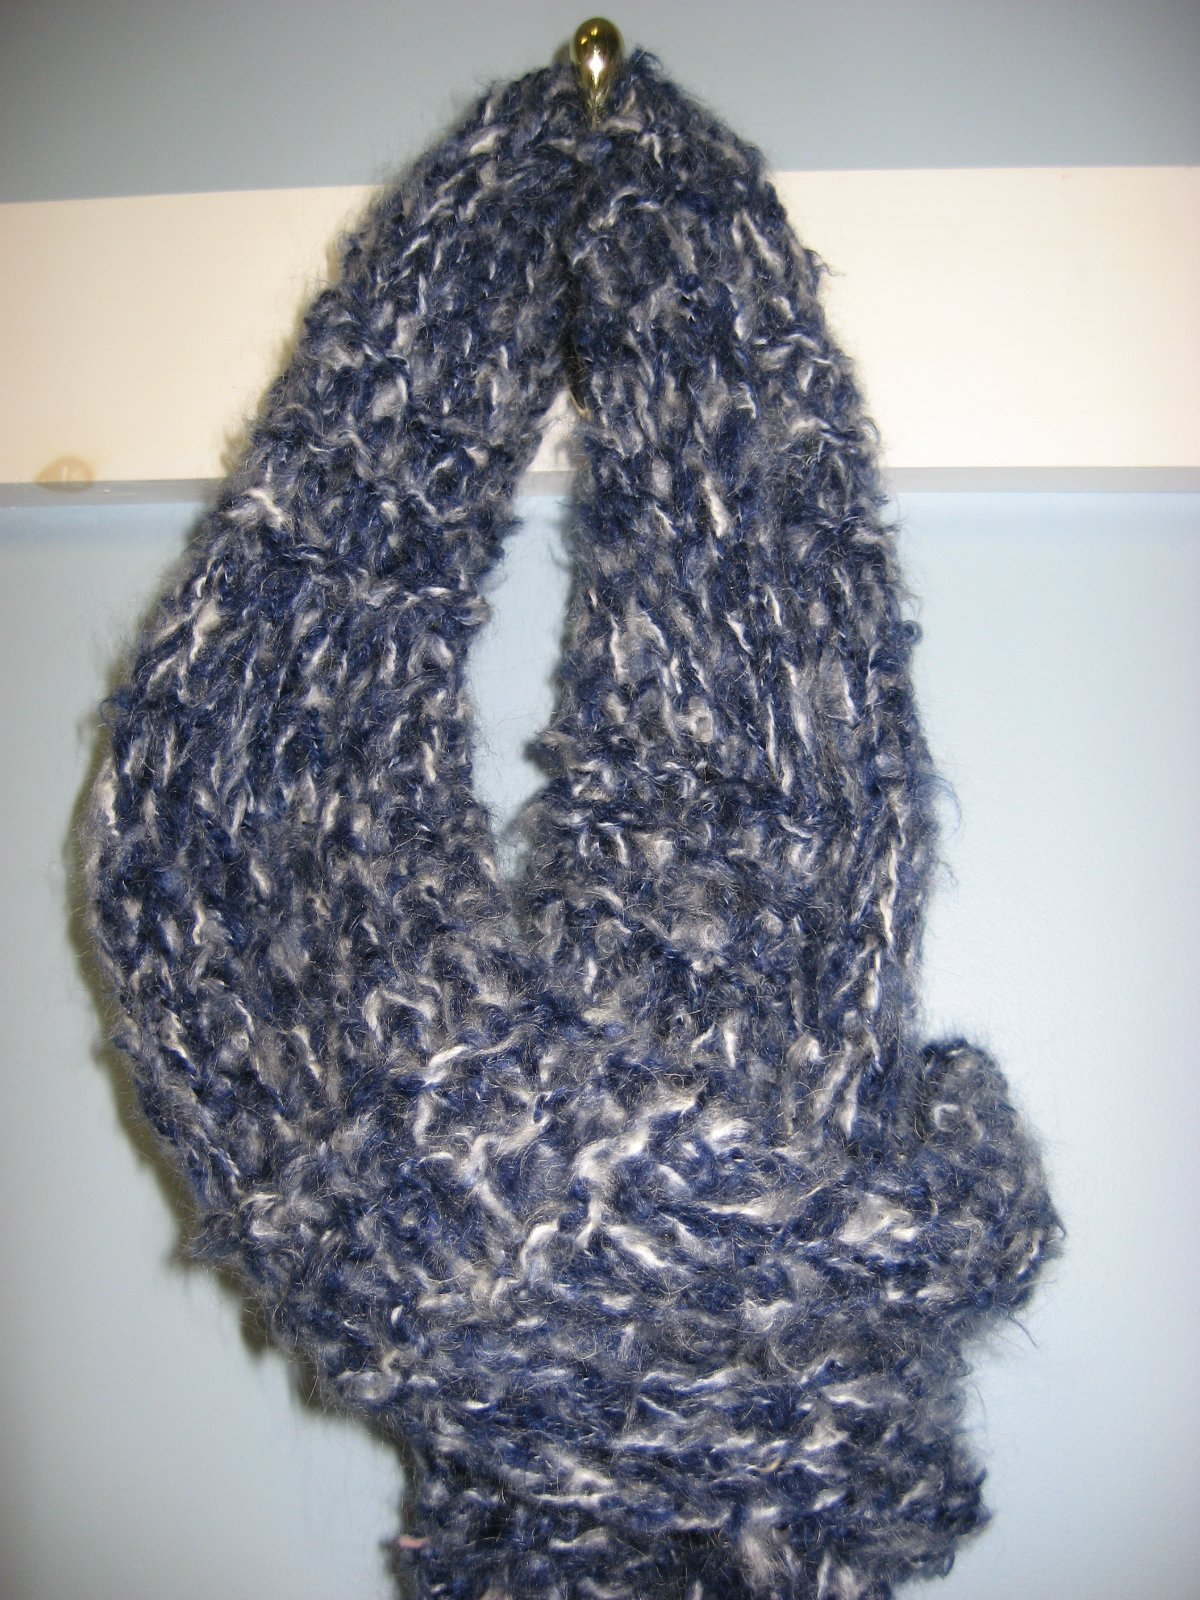 Knitted Stockinette Stitch Scarf Pattern : Hooked on Needles: Divine Knitted Scarf ~ Quick, Easy, No Pattern!